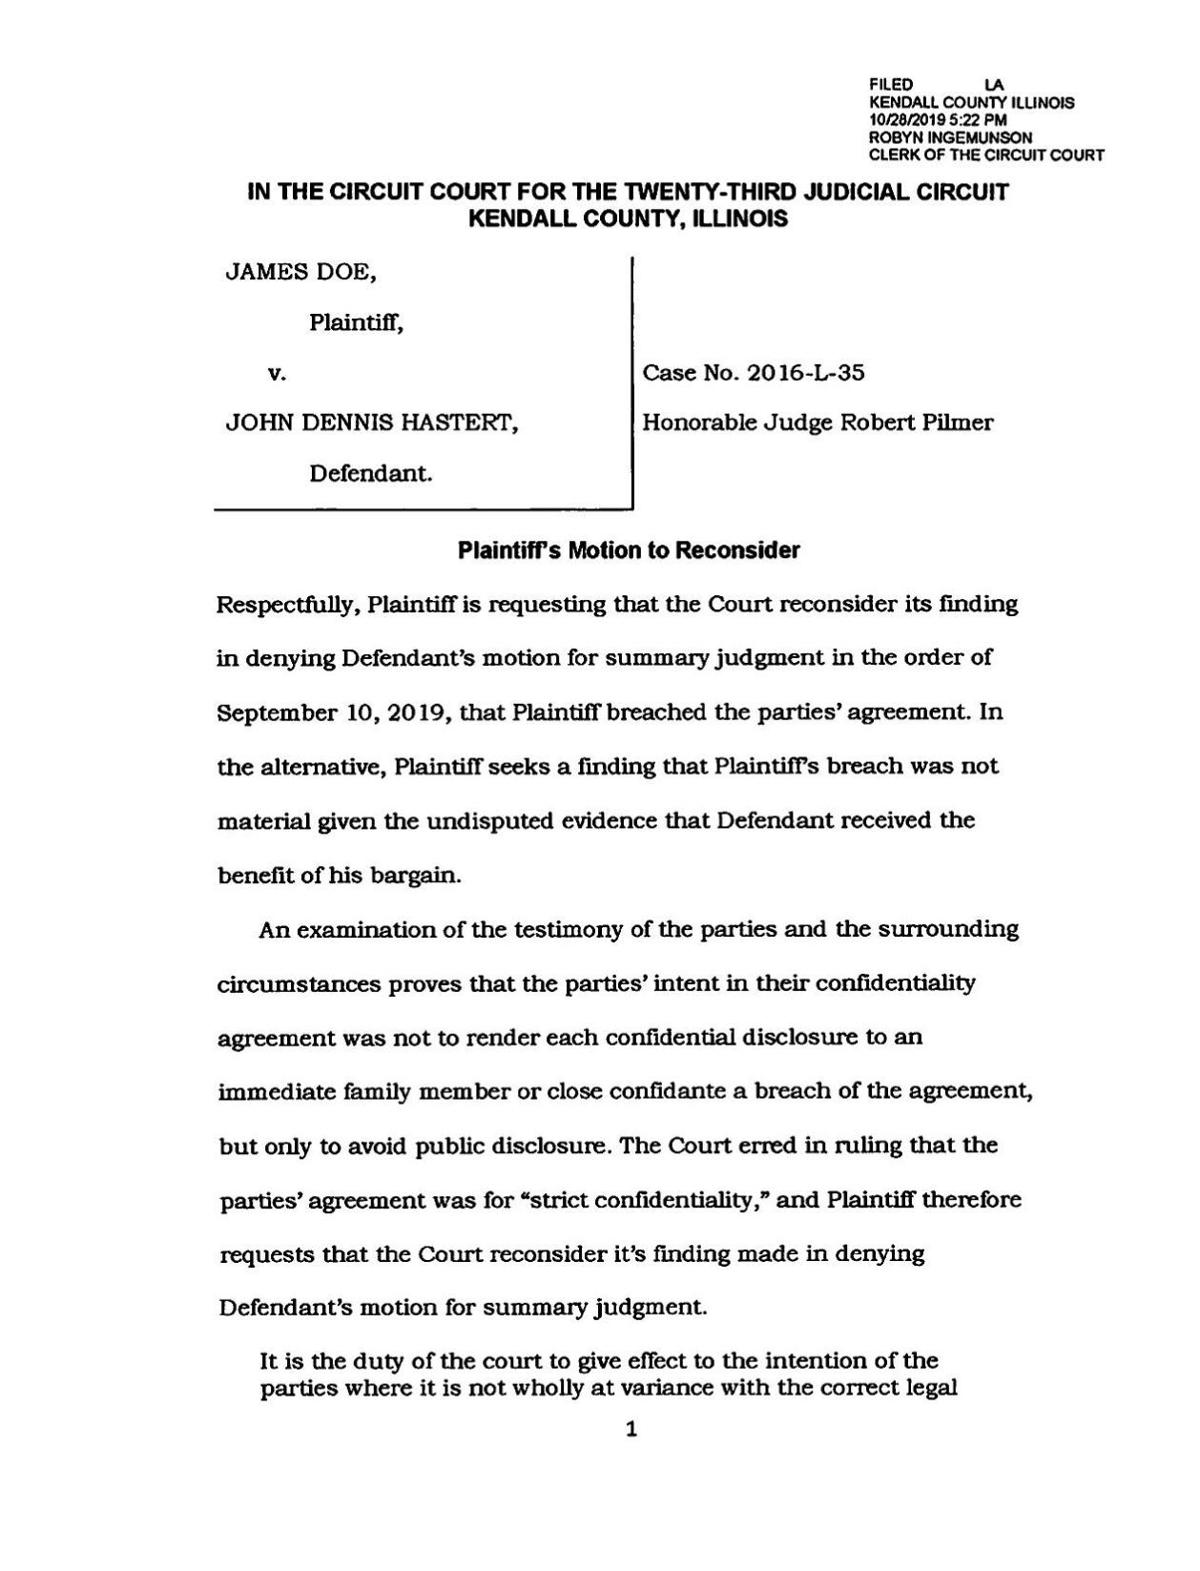 Doe Attorney's Motion to Reconsider